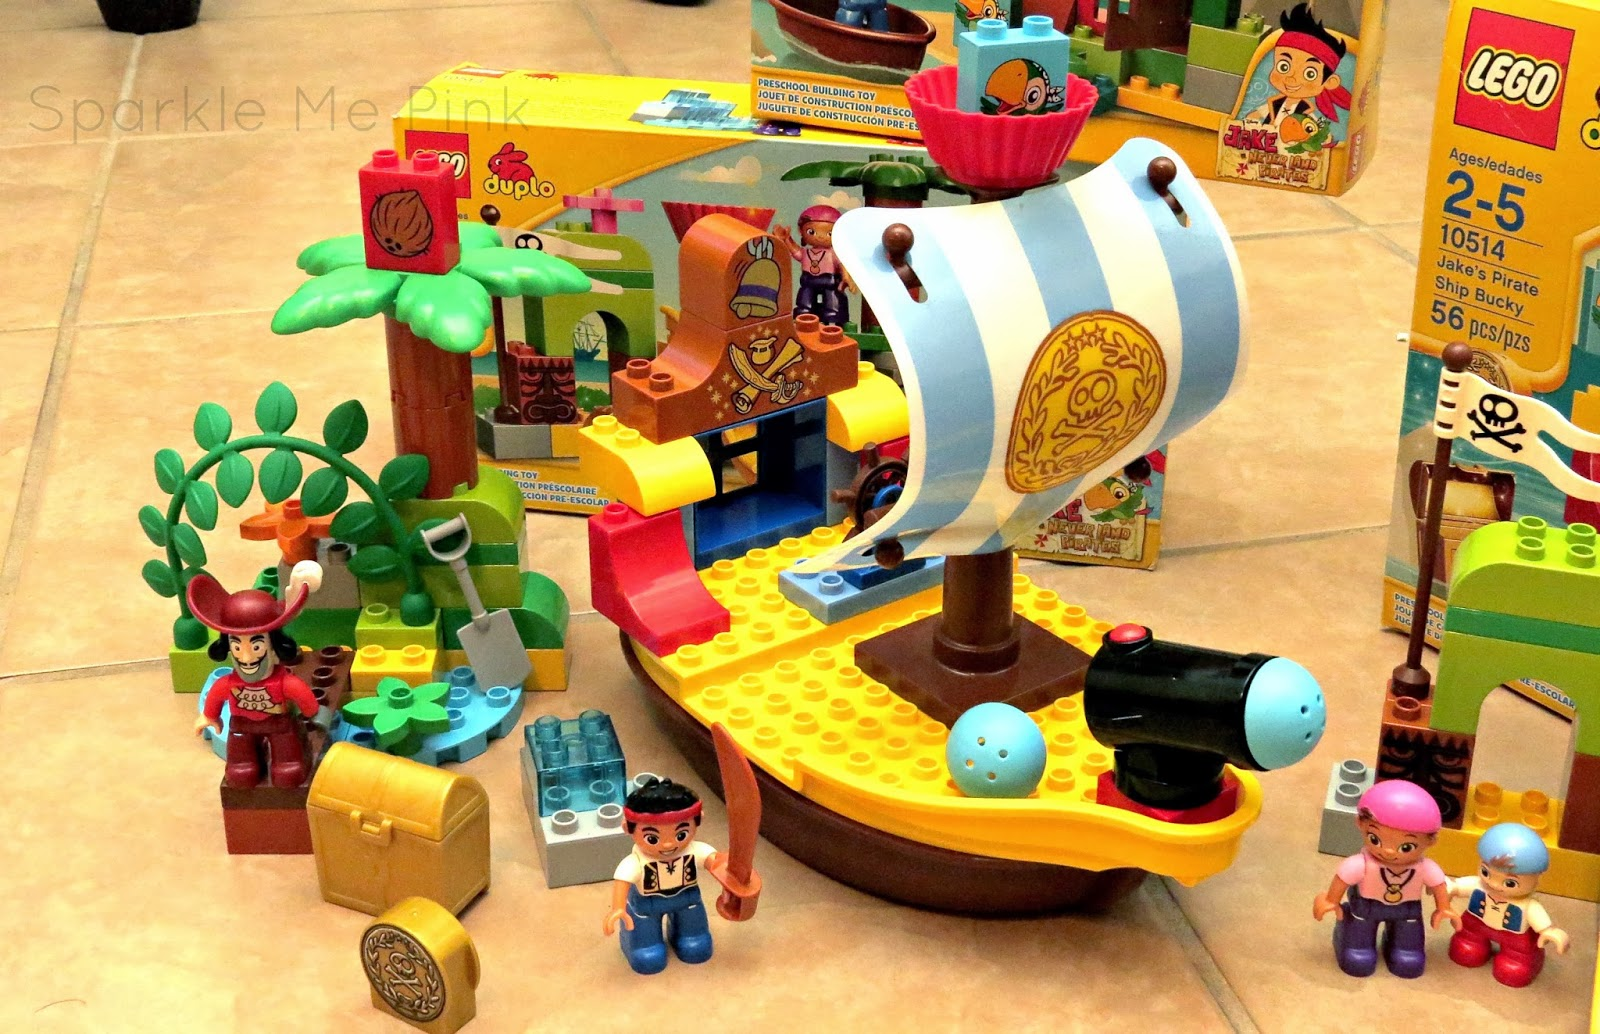 Sparkle Me Pink Lego Duplo Toy Review